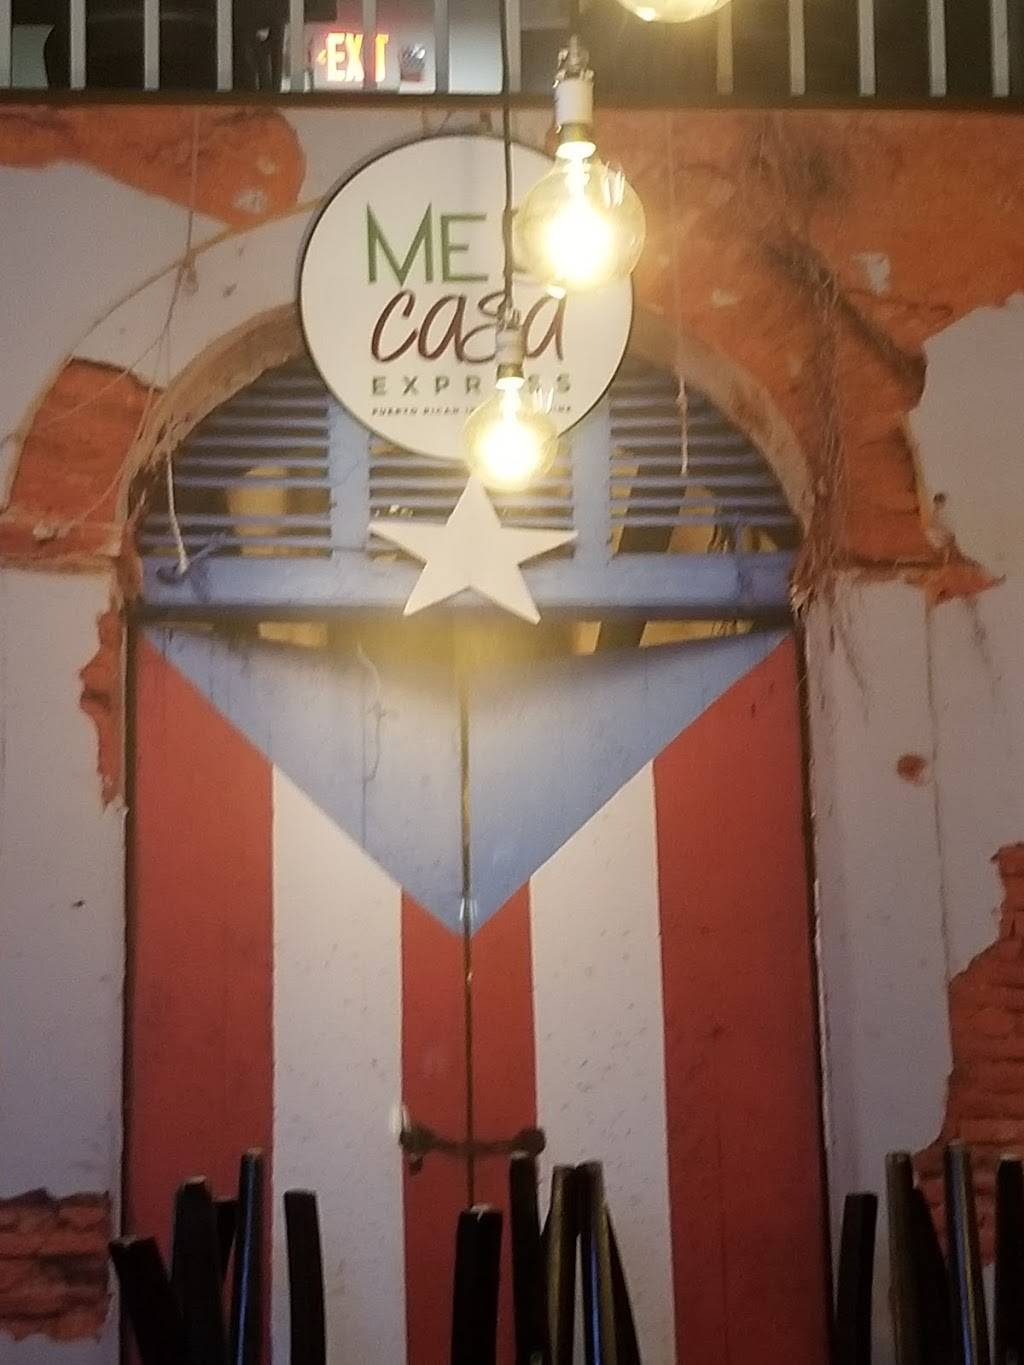 ME Casa Catering and Restaurant | restaurant | 109 Christopher Columbus Dr, Jersey City, NJ 07302, USA | 2014330019 OR +1 201-433-0019